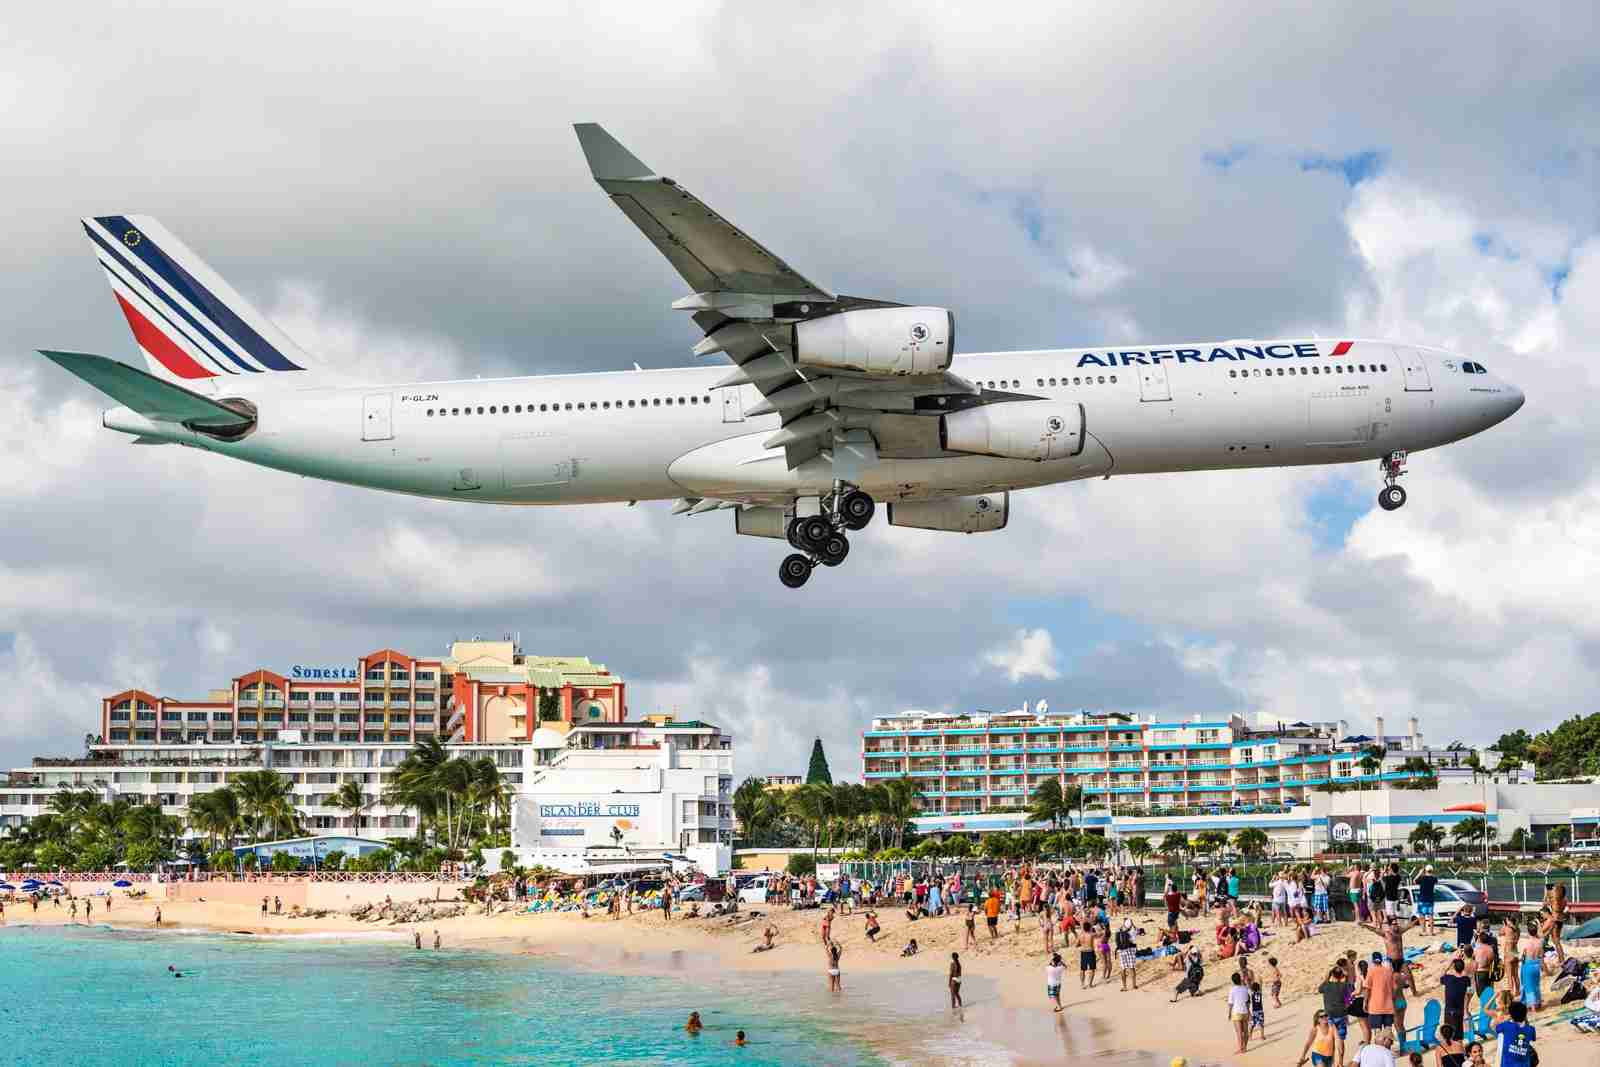 Maho Beach on Saint Maarten. (Photo by SeanPavonePhoto / Getty Images)